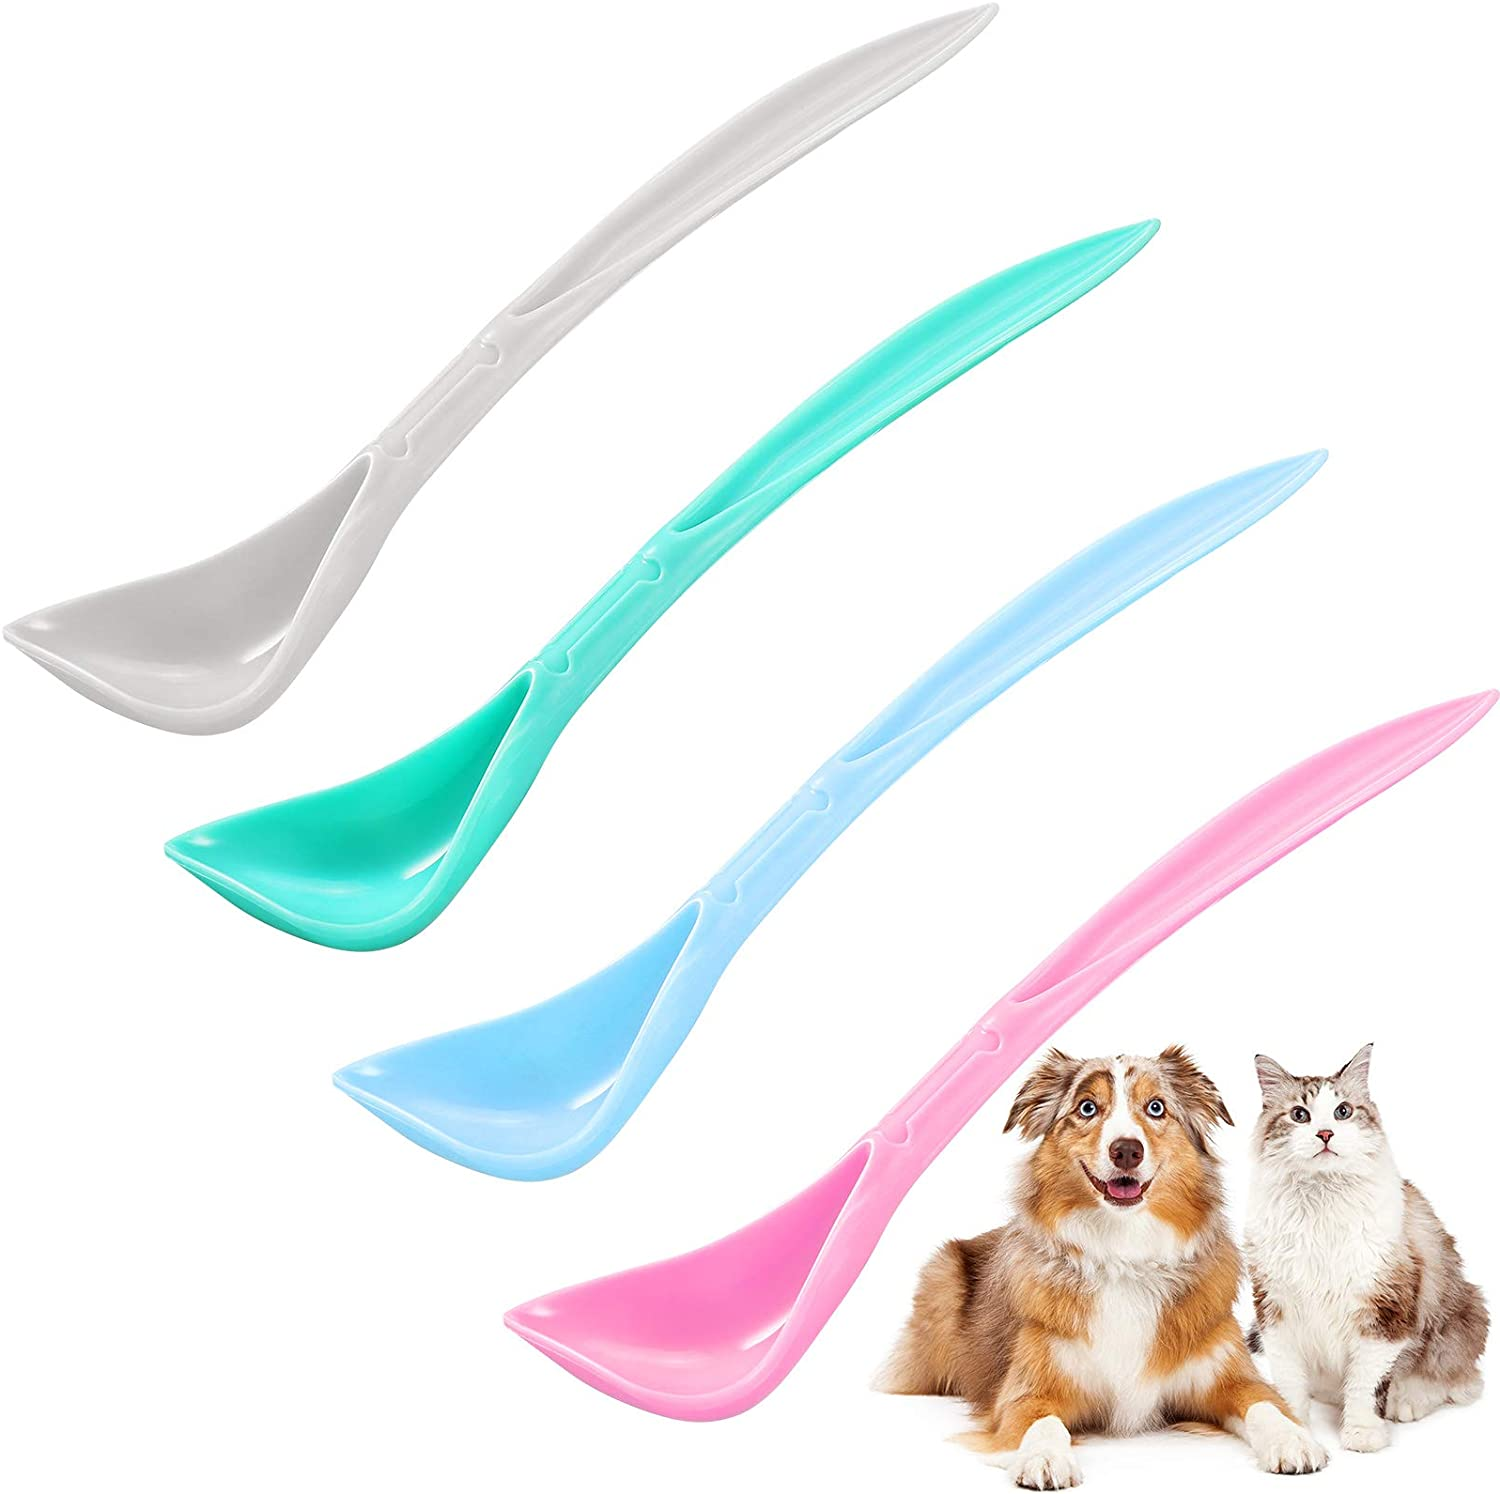 4 Pieces Pet Food Can Spoons Dog Cat Can Spoons Long Handle Dog Can Spoons Plastic Curved Design Pet Food Mixing Spoons